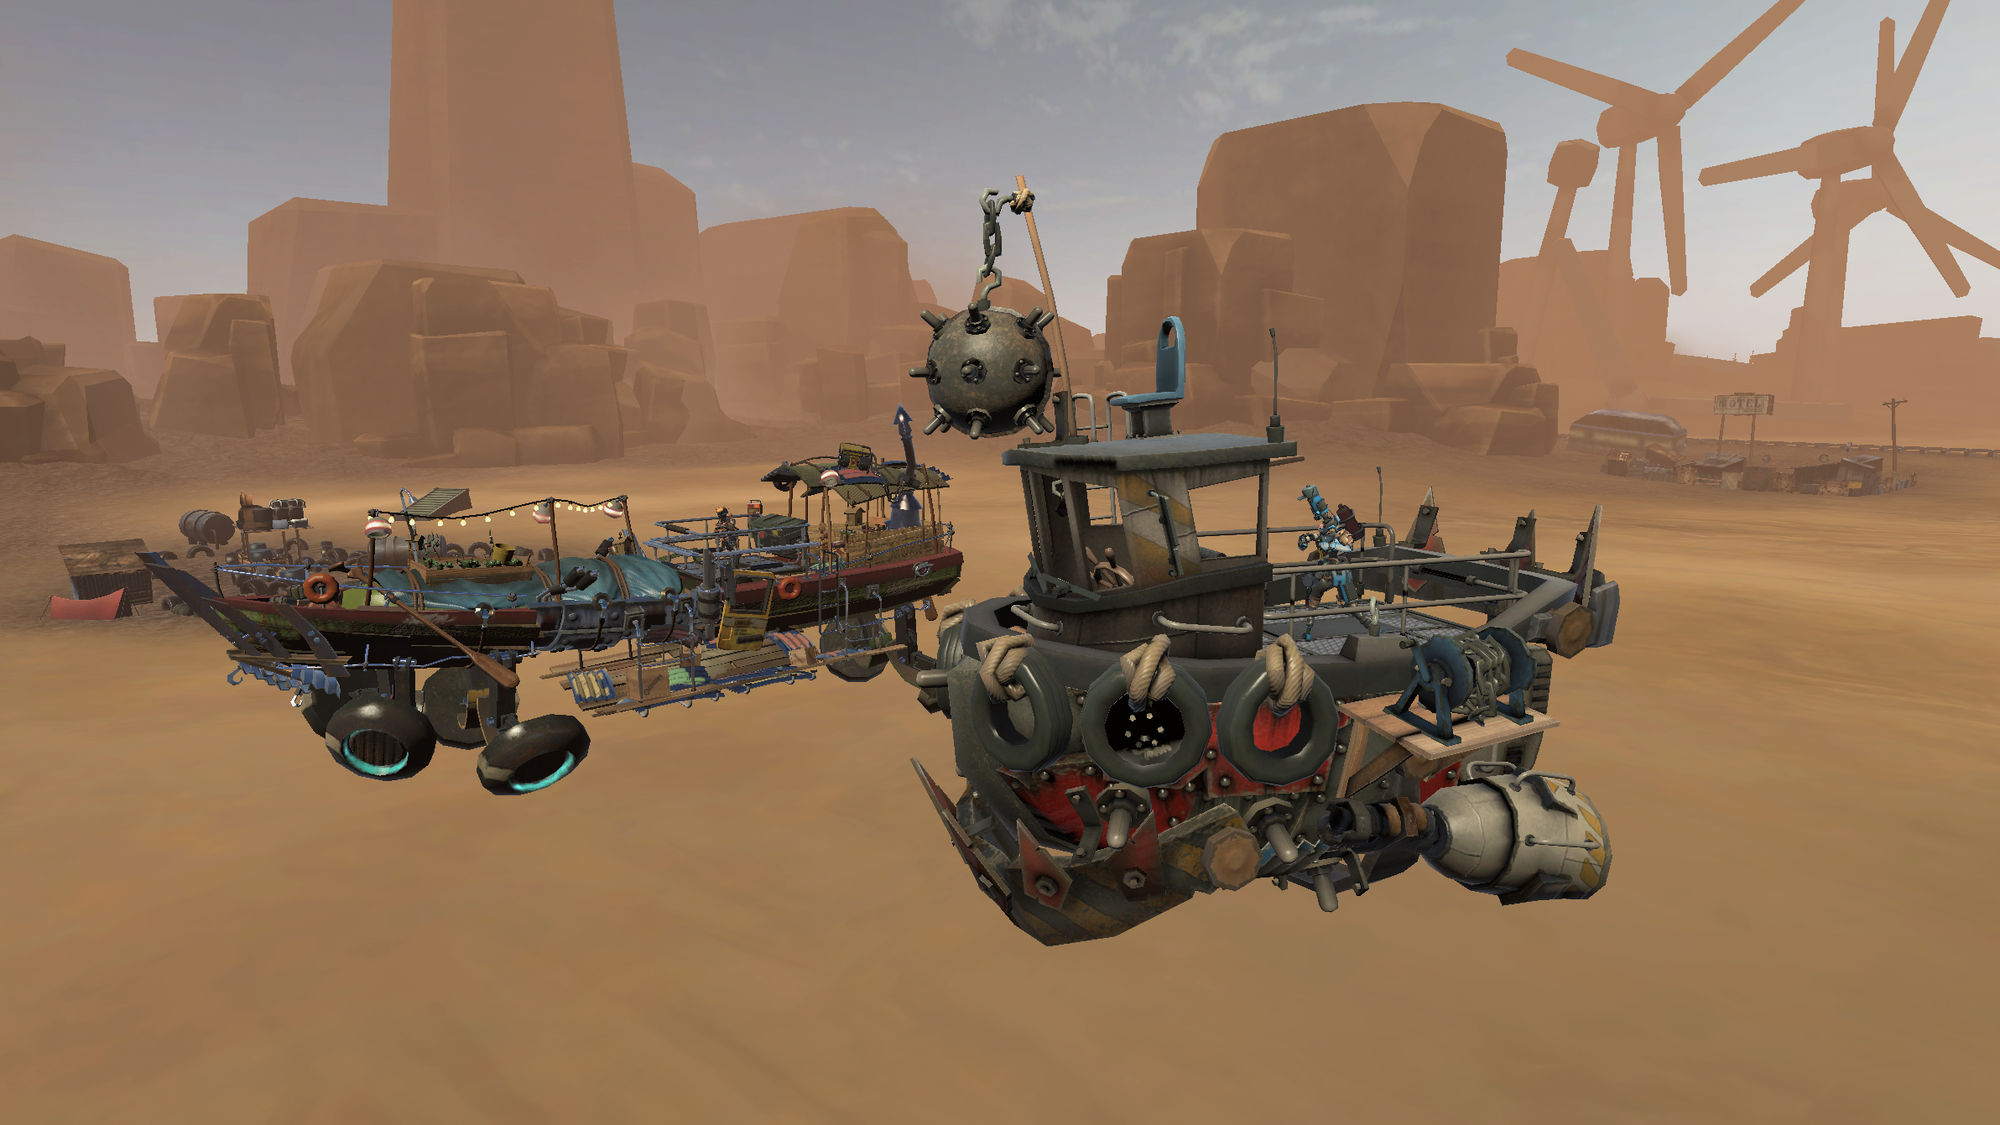 4e7f060cc9c7 The 10 Best Virtual Reality Games You Can Play Right Now - Men s Journal